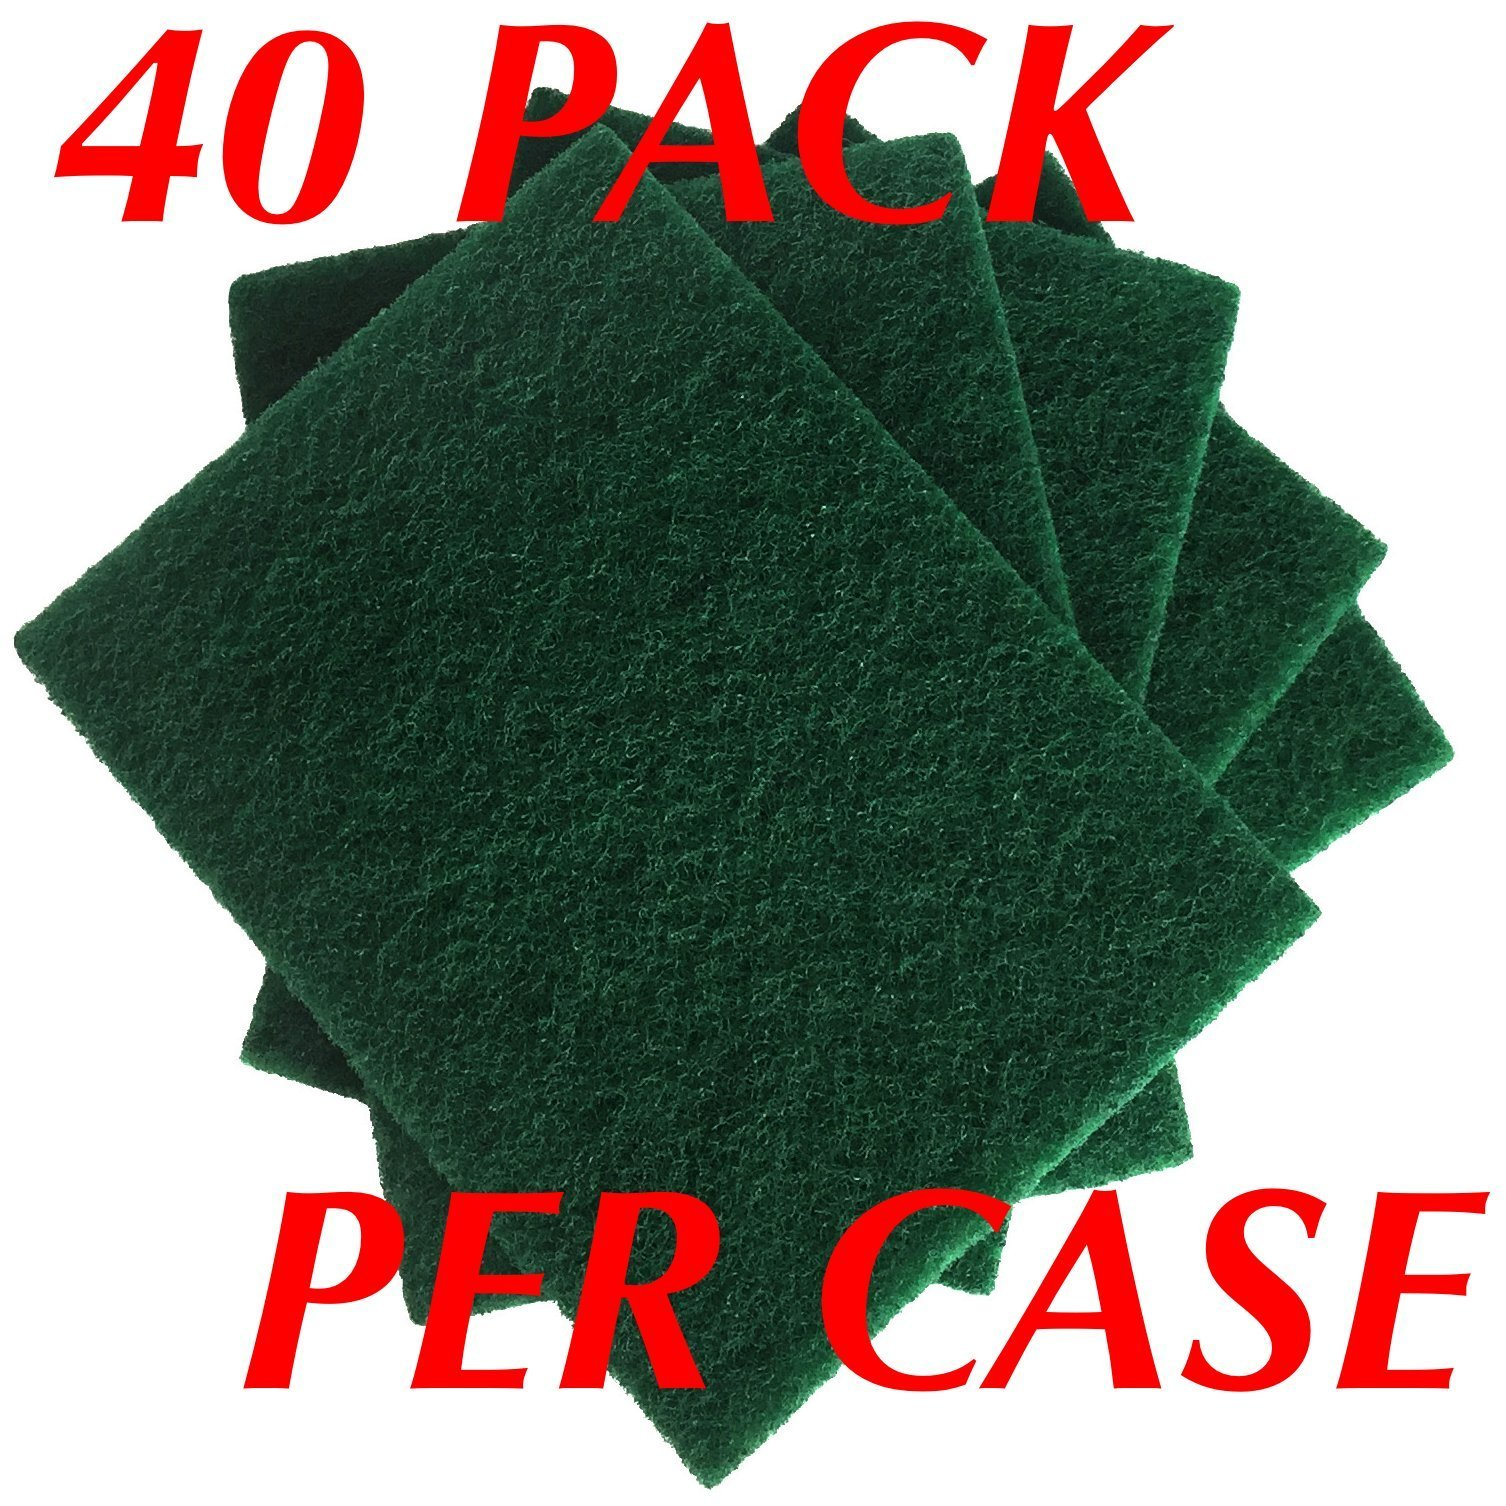 HeRO Dish Scrubber Scouring Pads - Household Scrub Pads for Stove Top Cleaner and Kitchen Scrubbers for Dishes, Cuts Solvents & Greasy Messes, Green 4.5 x 6 inch (Pack of 40)          by HERO IMPORTS (Image #2)